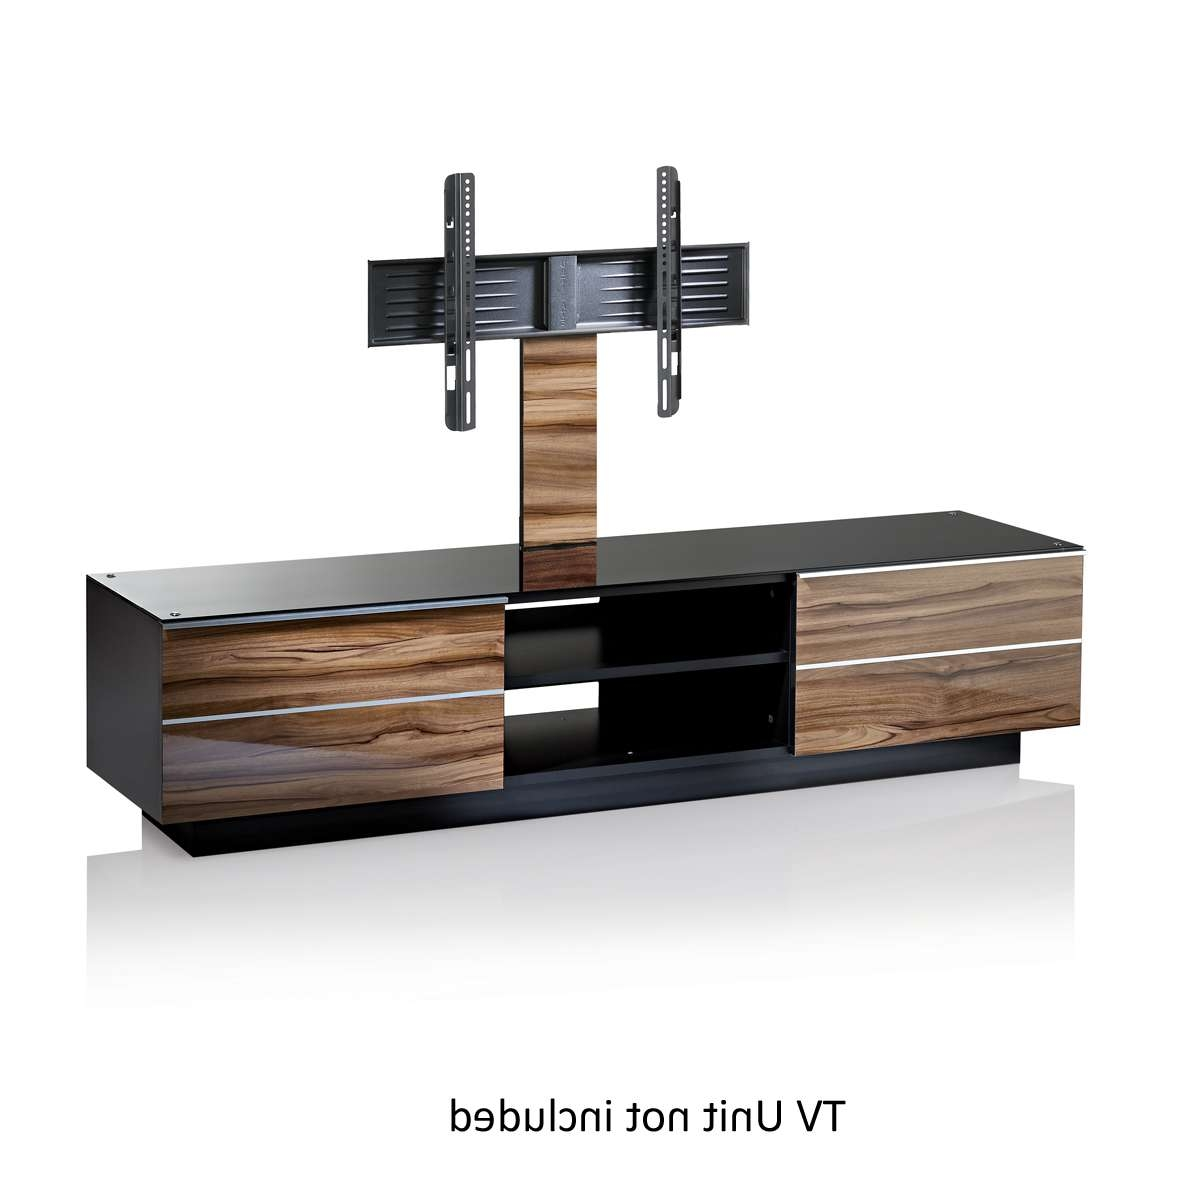 Milano G B 80 Mln Cantilever Tv Bracket,ukcf Ultimate,,uk Cf Regarding Tv Stands Cantilever (View 7 of 15)